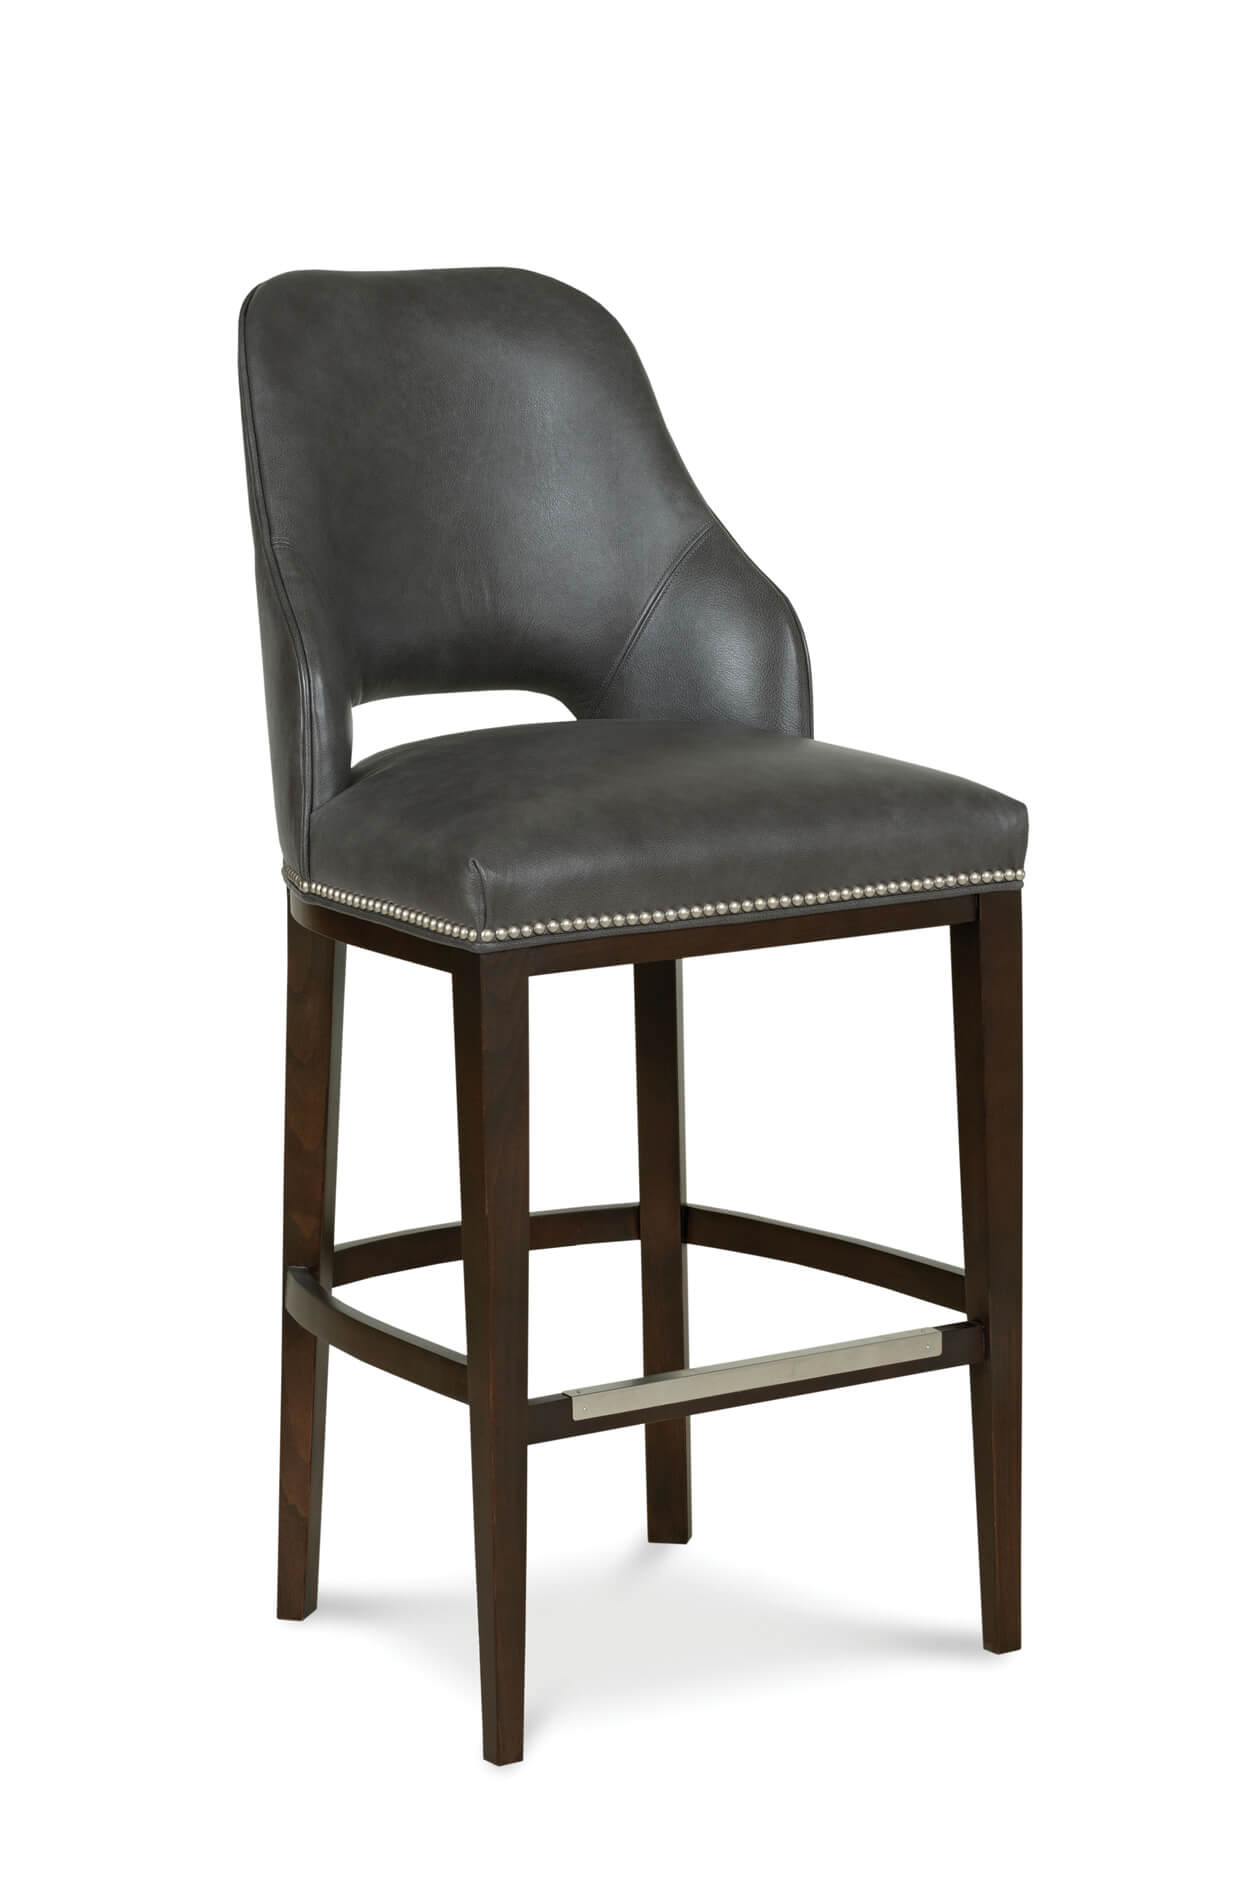 Fairfield's Darien Wooden Bar Stool with Upholstered Back